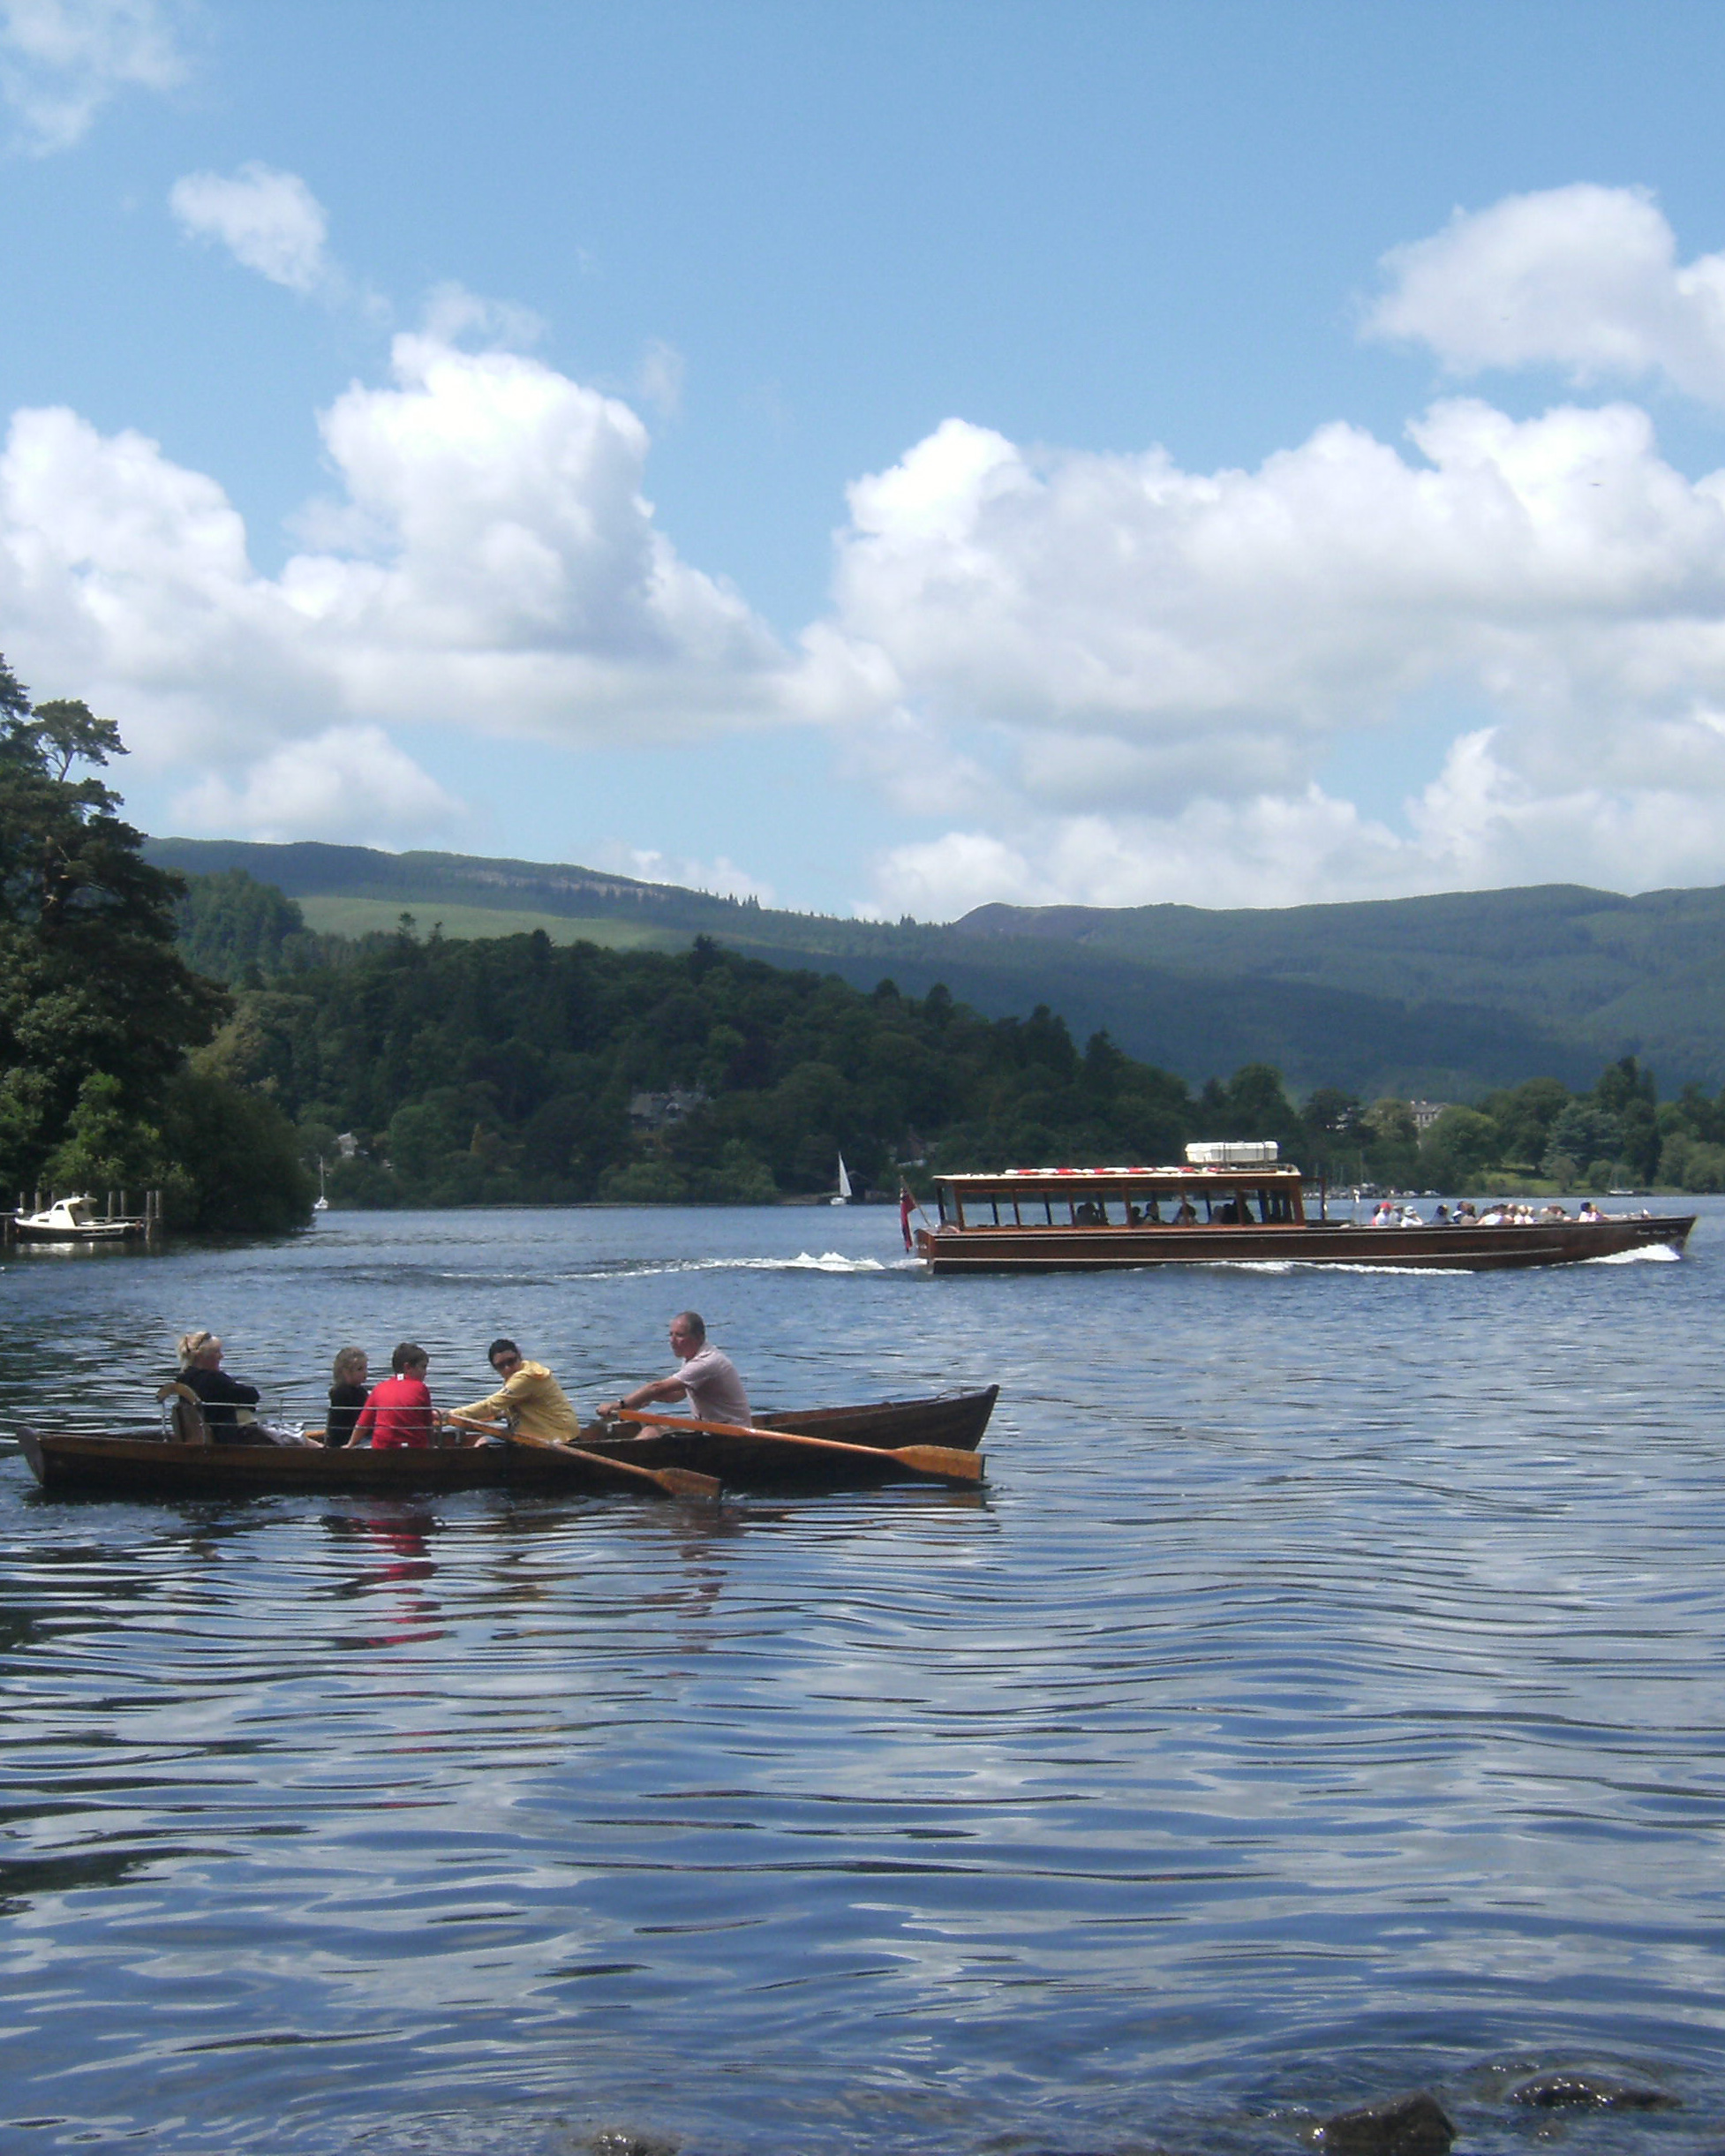 Boating on Derwentwater © Andrew Newton